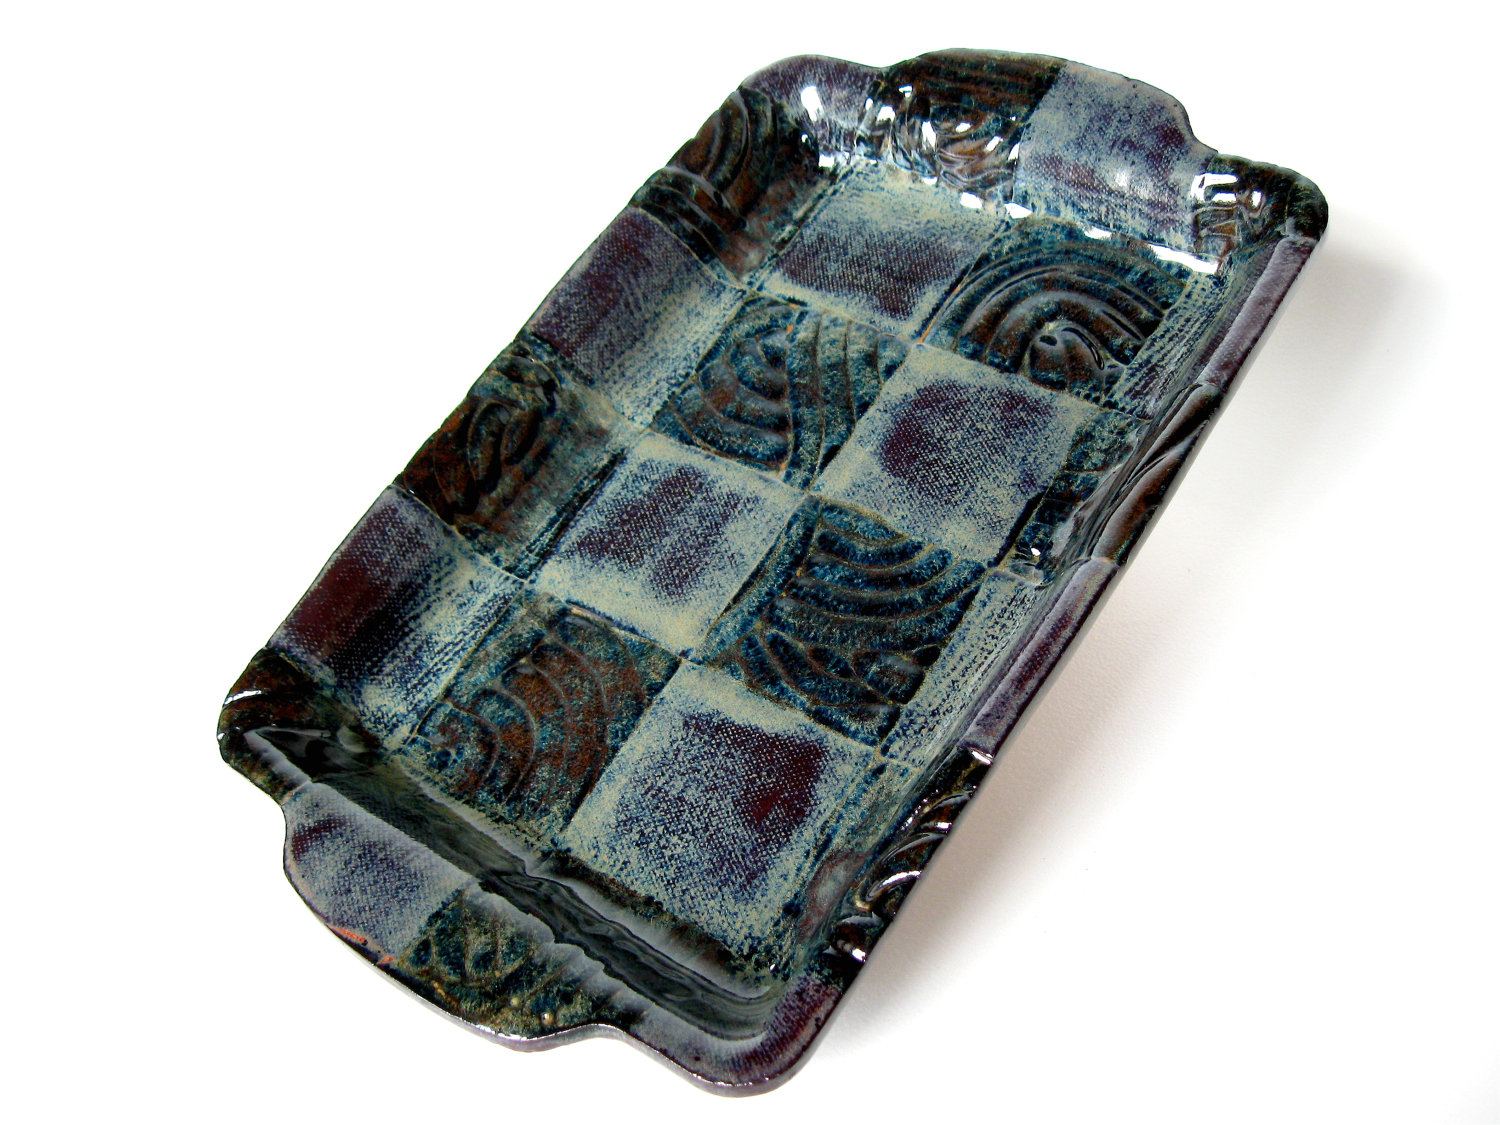 Twilight Serving Tray, 12 x 7.5 inches